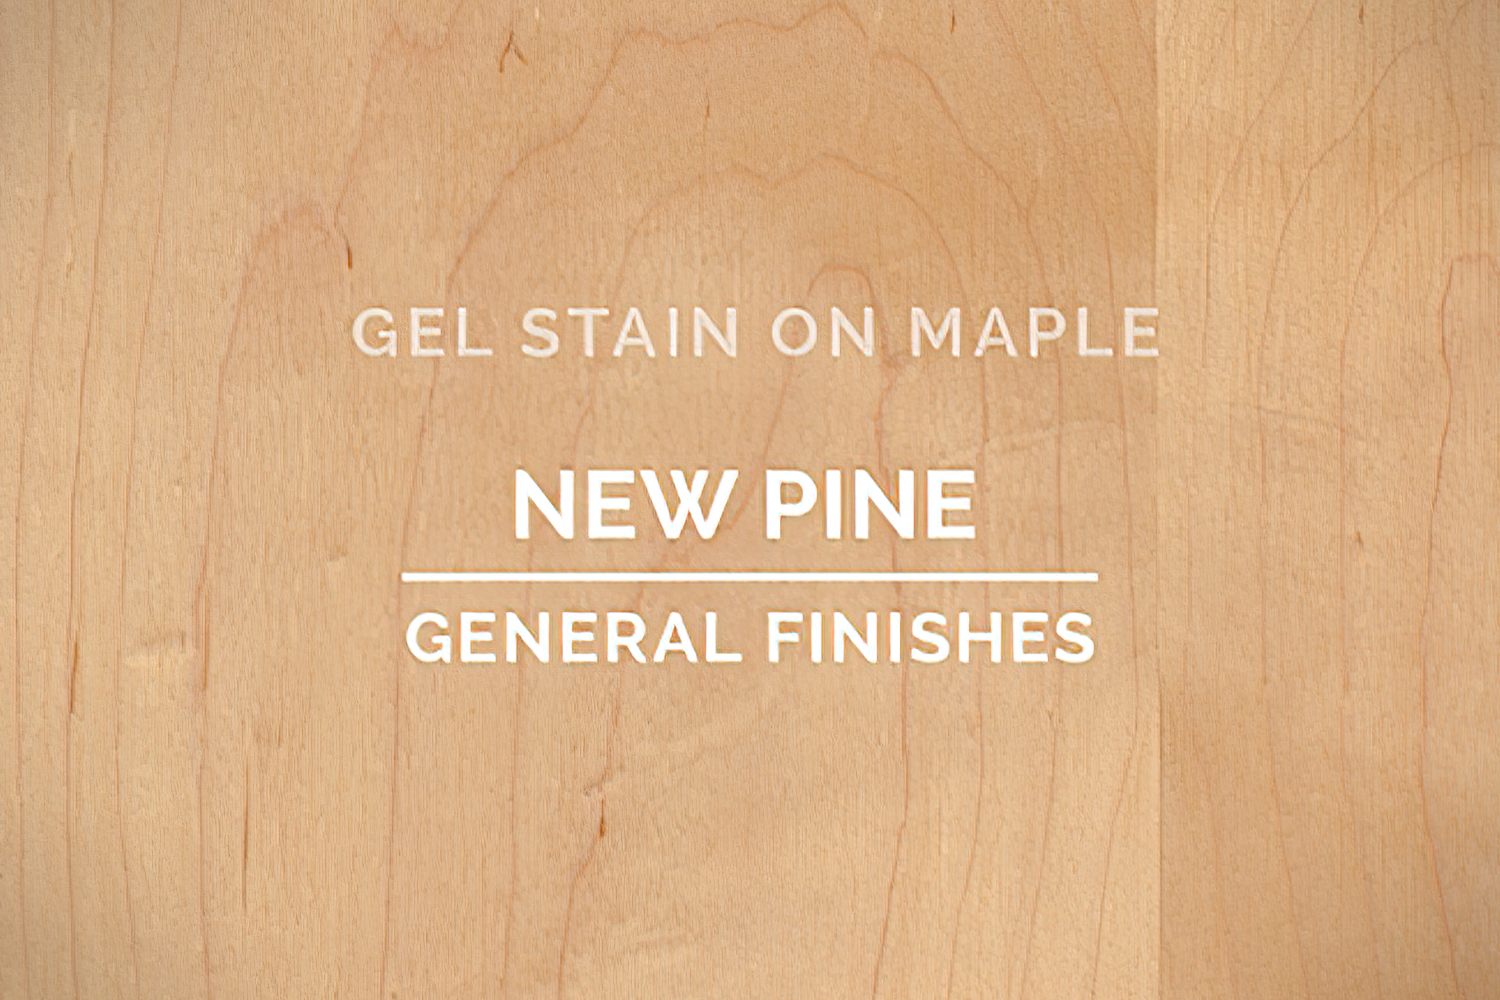 Color Chip Gel Stain New Pine On Maple General Finishes Copy